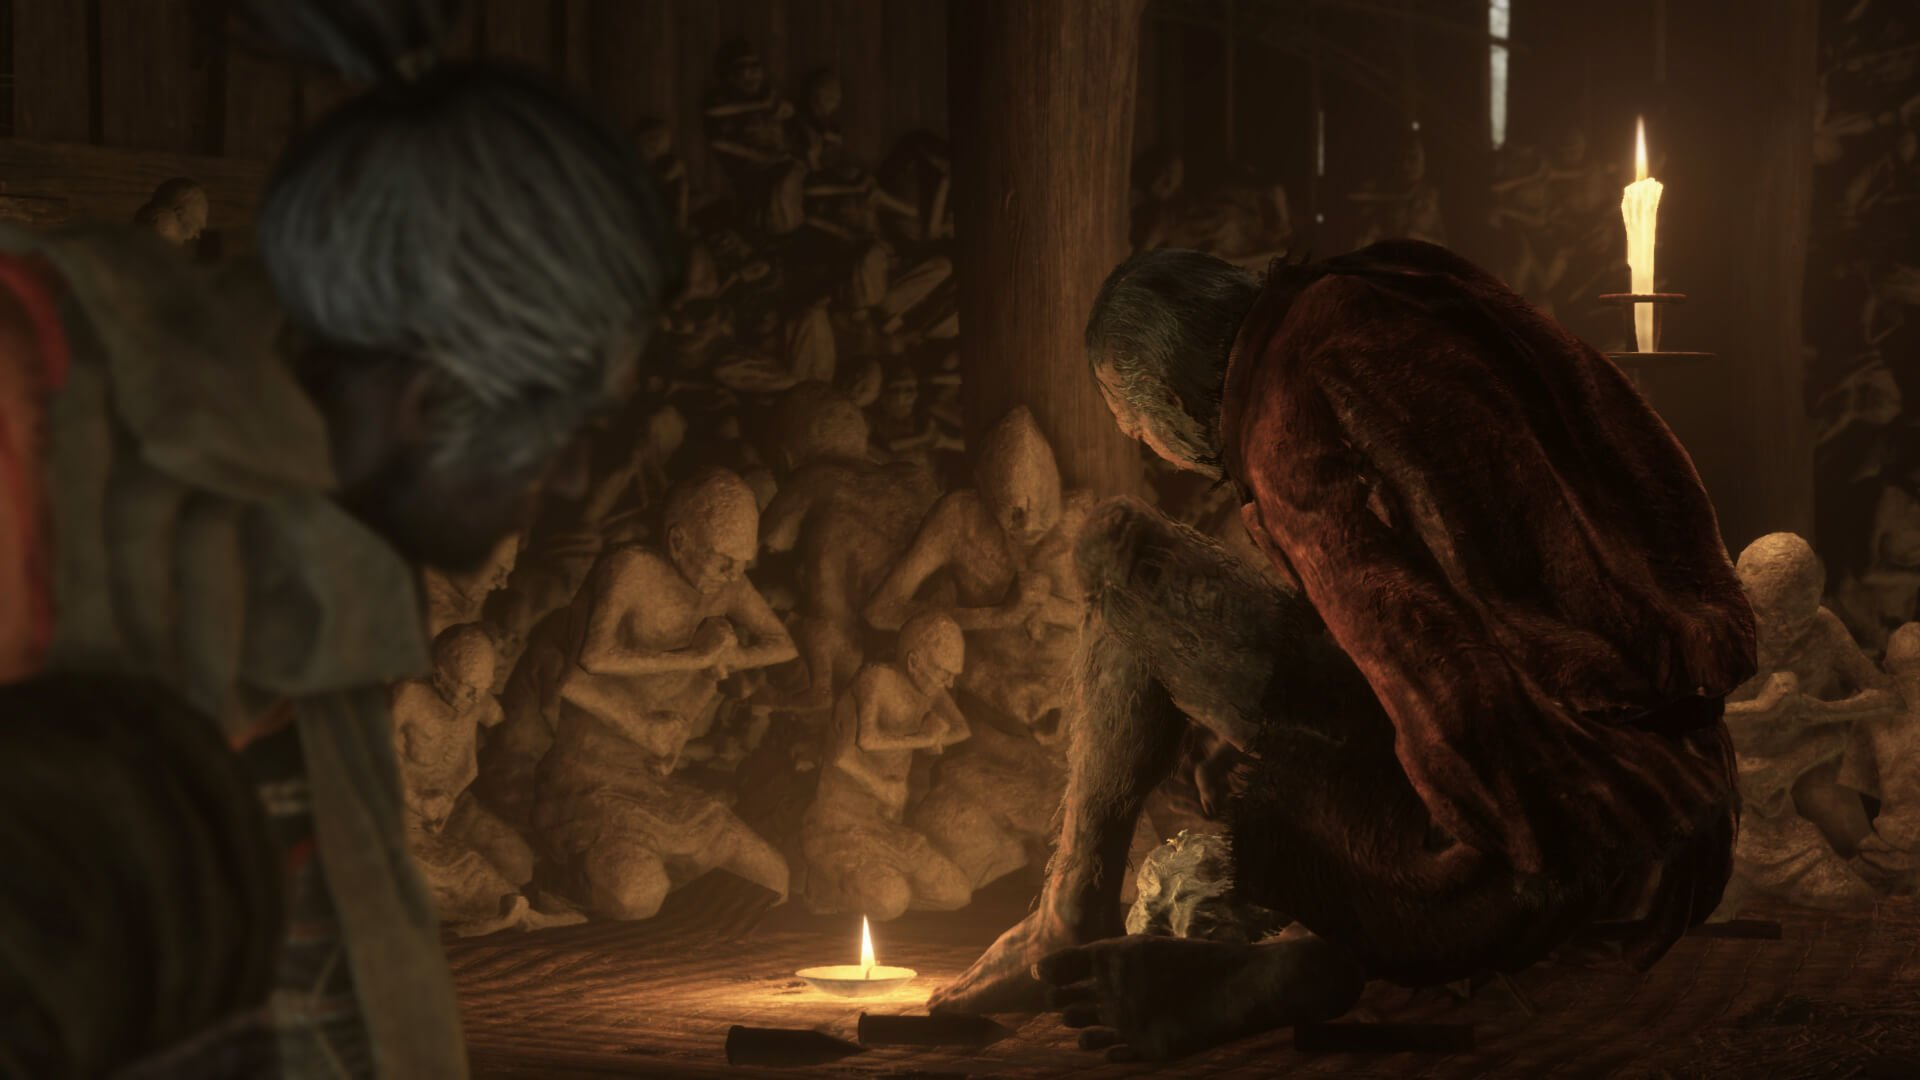 Who is dogen in Sekiro? The Sculptor is his friend